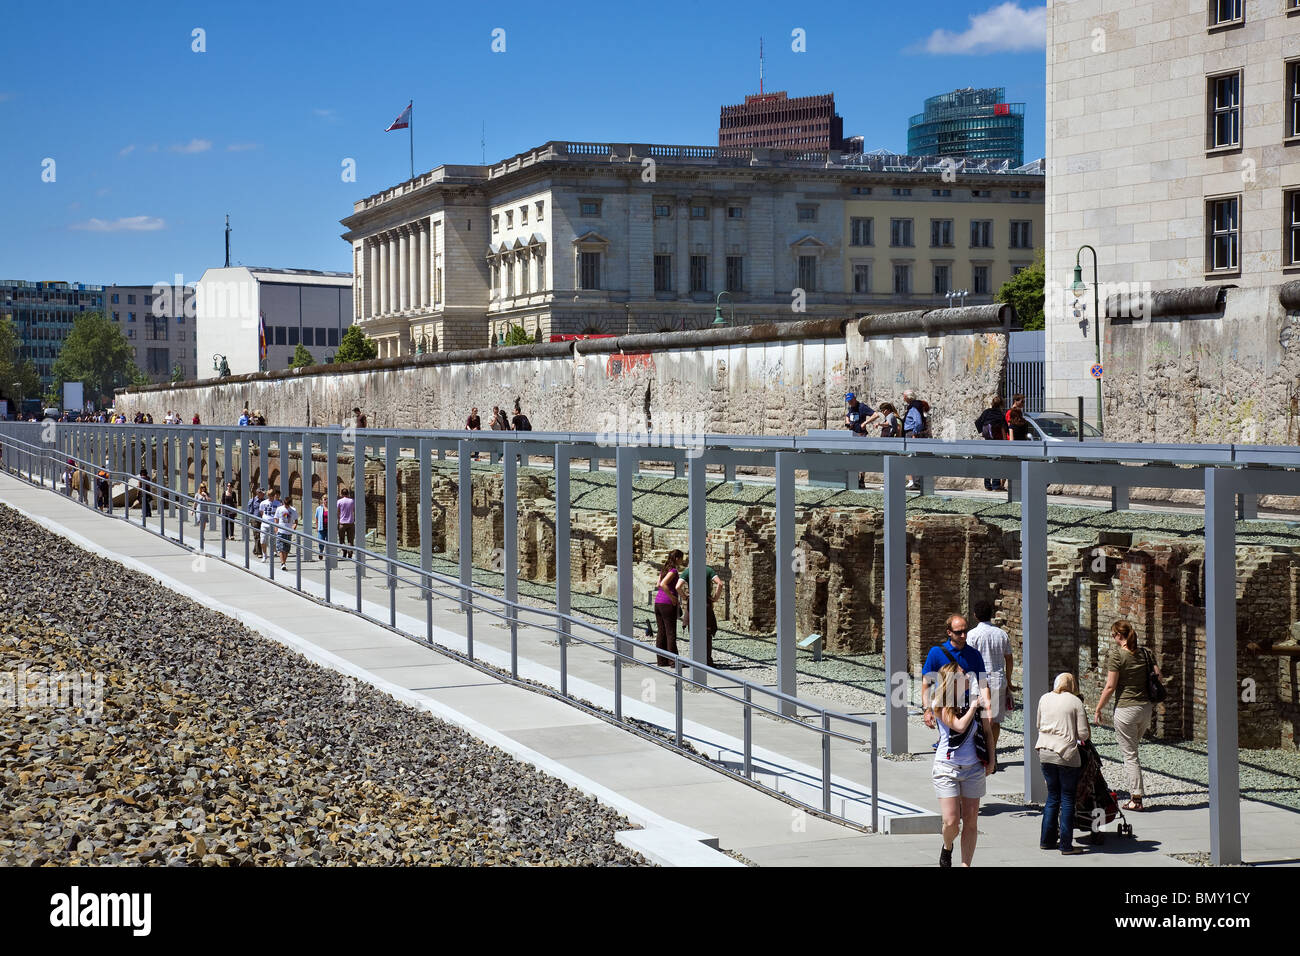 Topography of Terror, Berlin, Germany - Berlin Wall remains - Stock Image